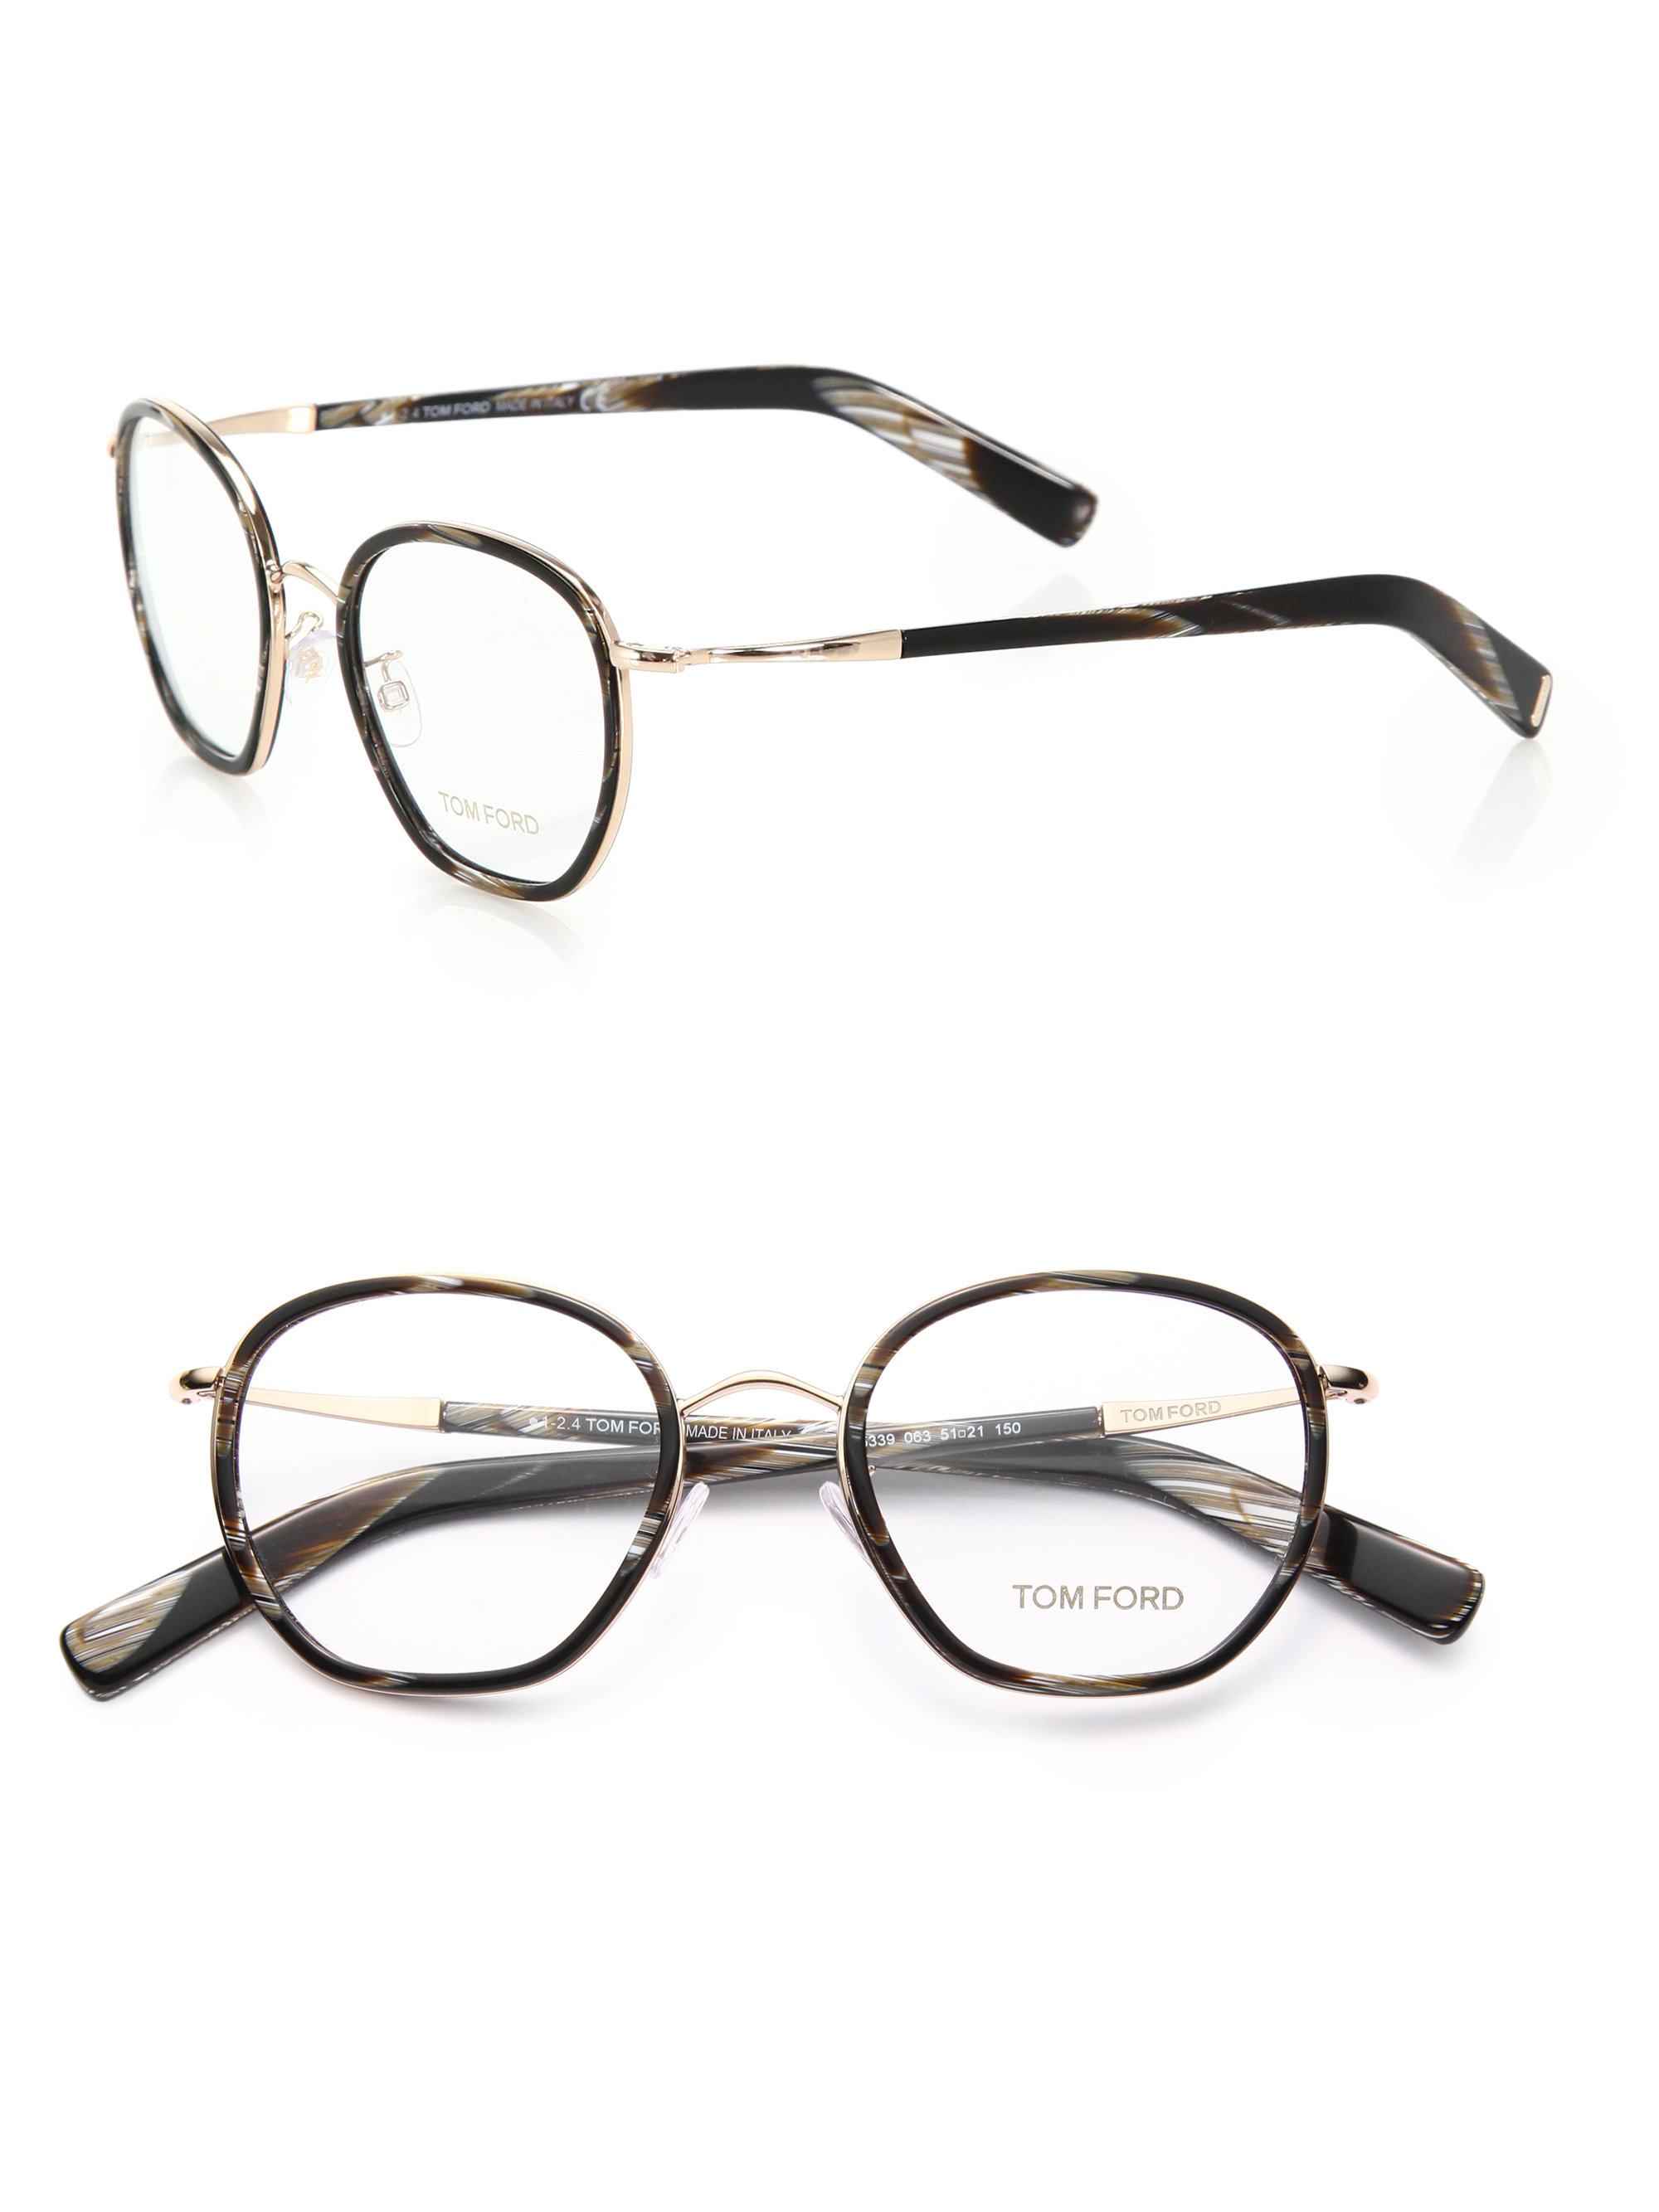 d954c5d3a9cdc Tom Ford 51mm Round Acetate   Metal Optical Glasses in Black - Lyst